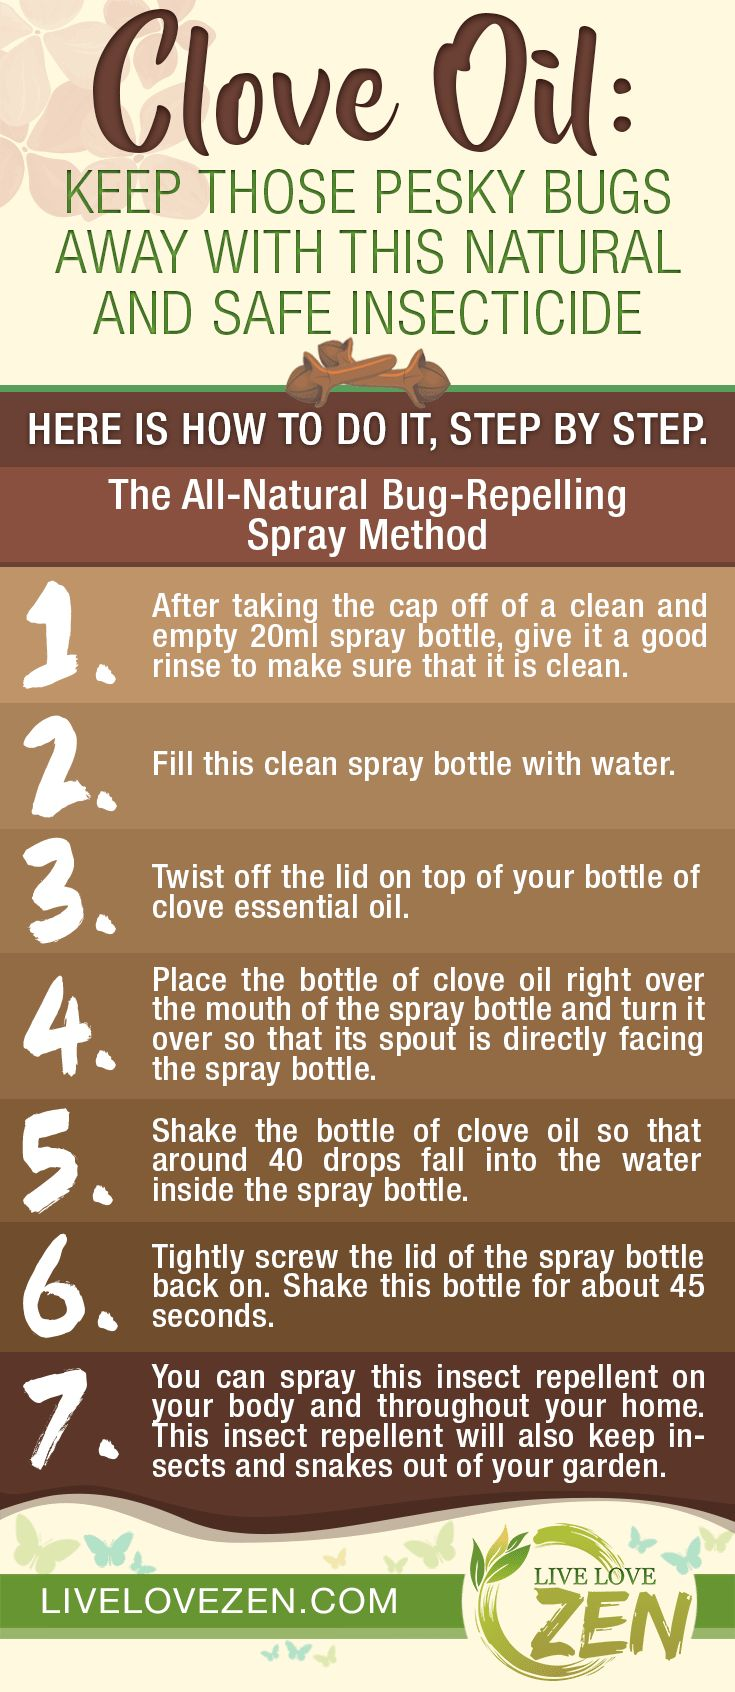 Clove Oil: Keep Those Pesky Bugs Away with this Natural and Safe Insecticide